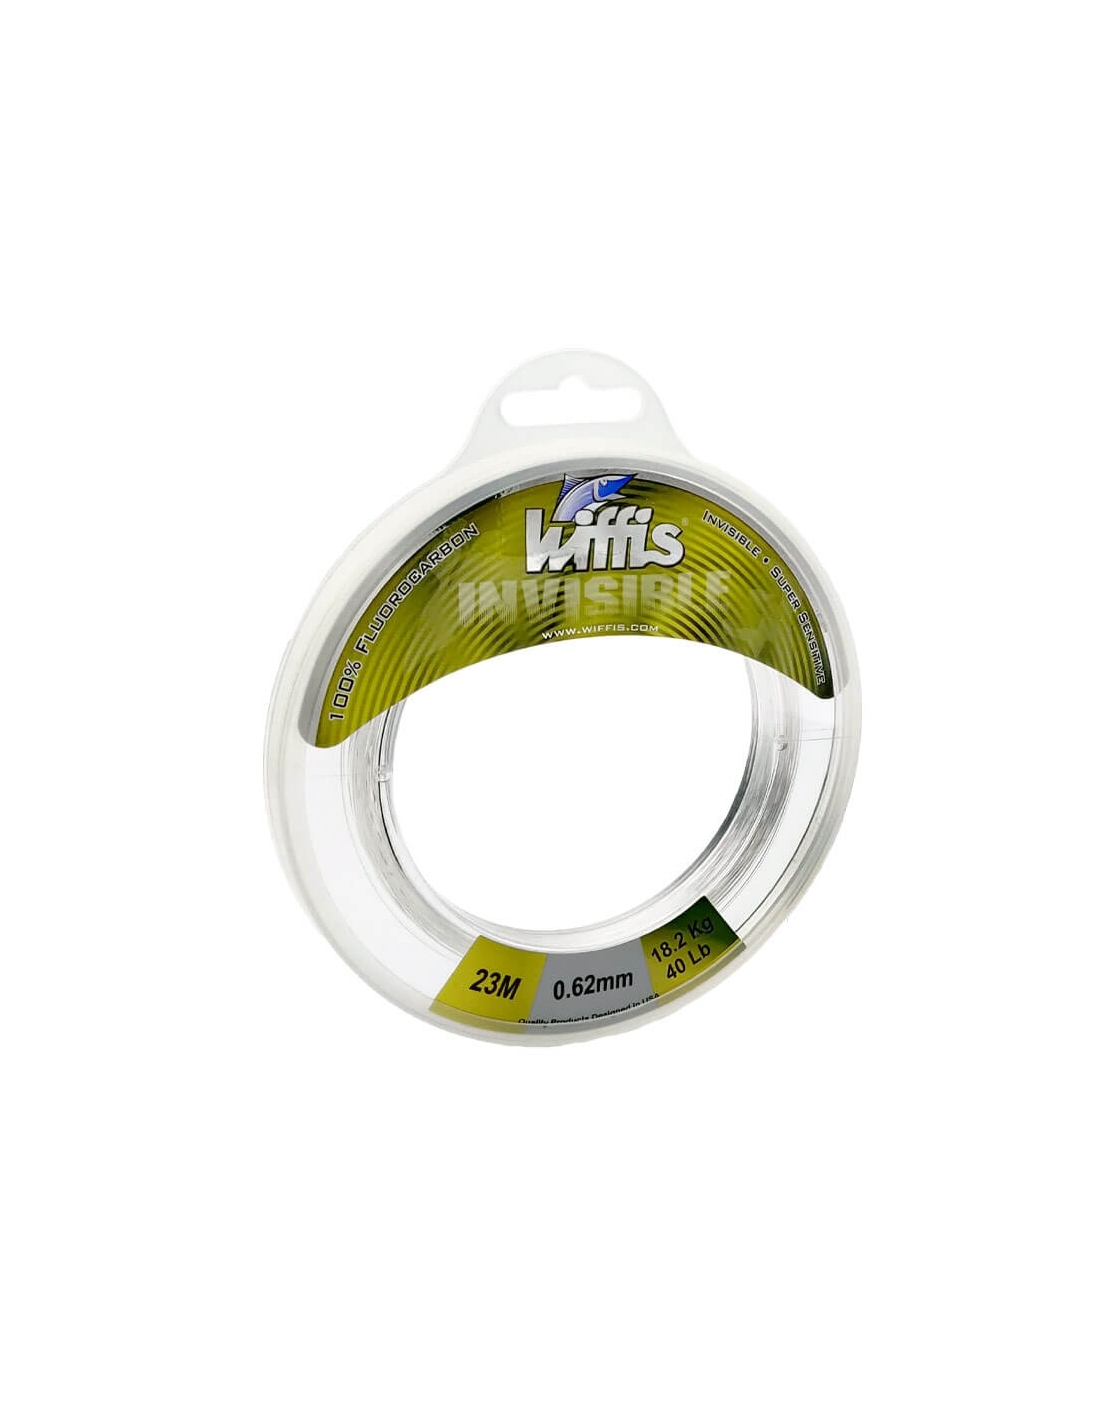 Leader Fluorocarbono Wiffis Invisible 23 m